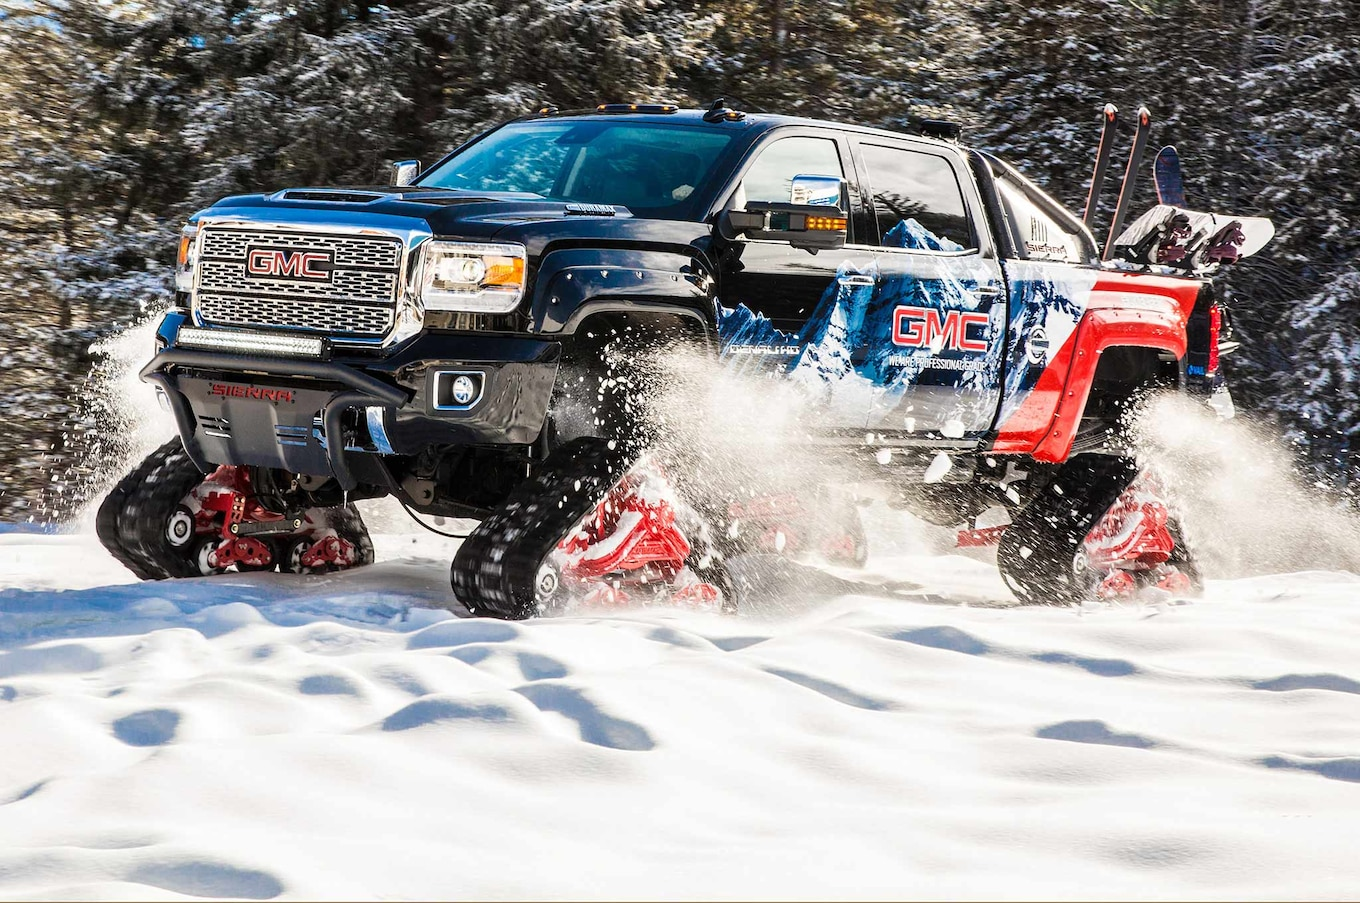 hight resolution of tracked gmc sierra 2500hd all mountain concept is a snow slayer